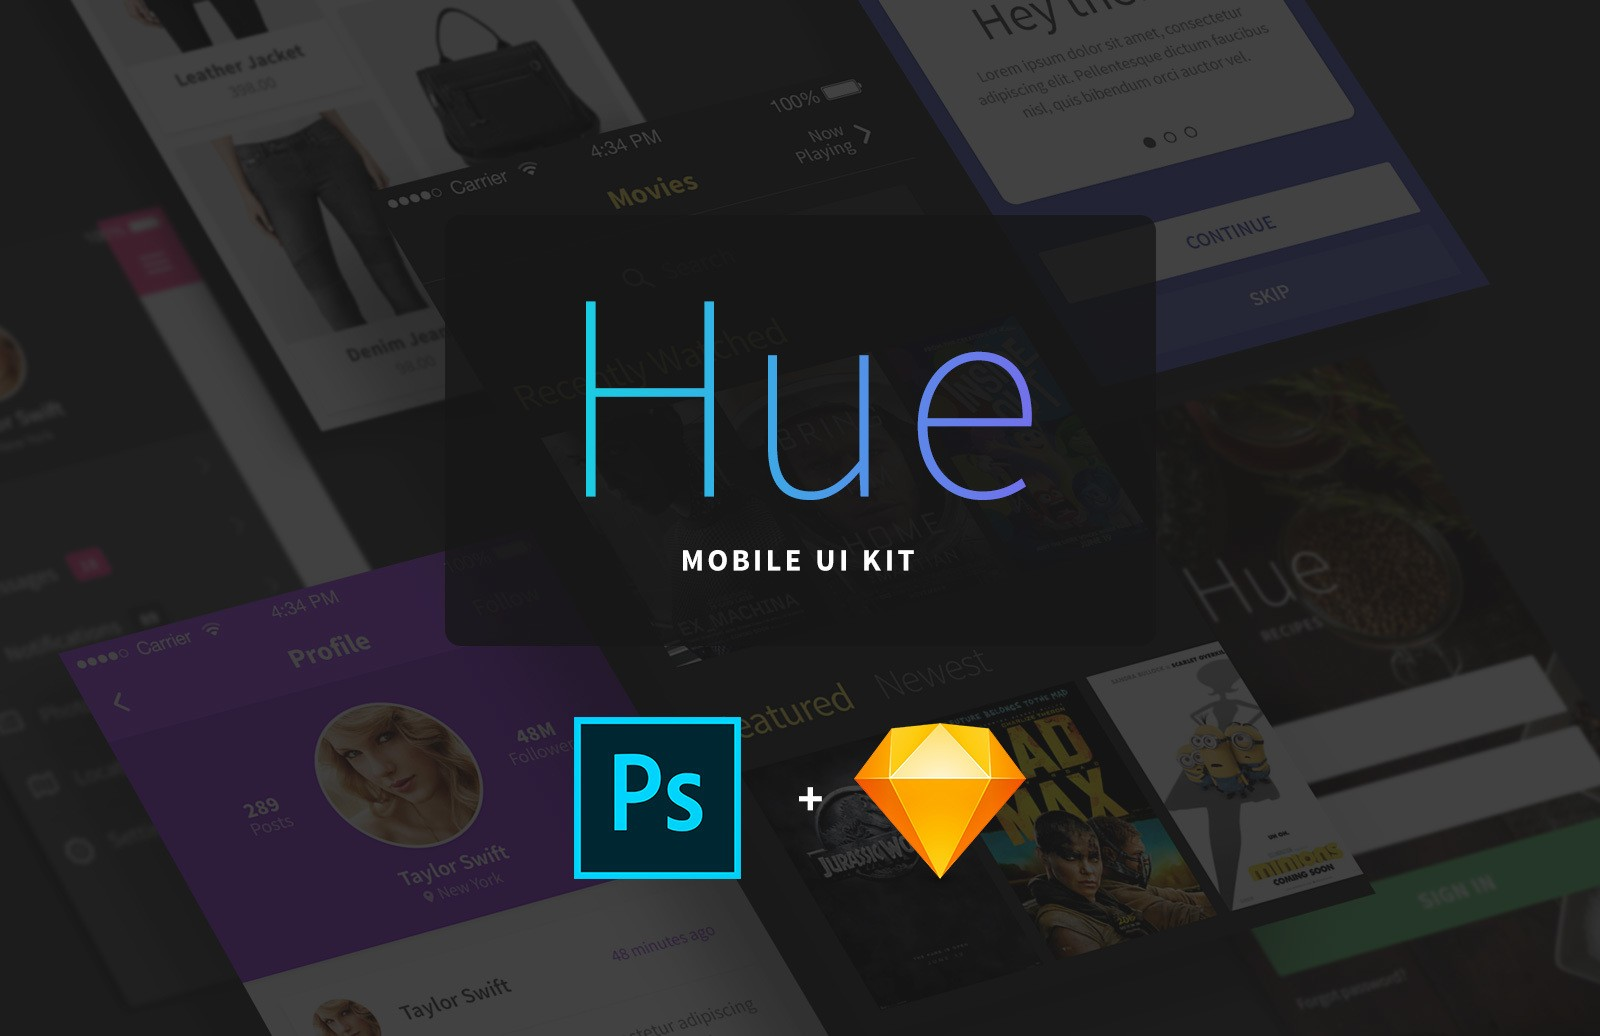 Hue - 44 Screens for iOS App Design